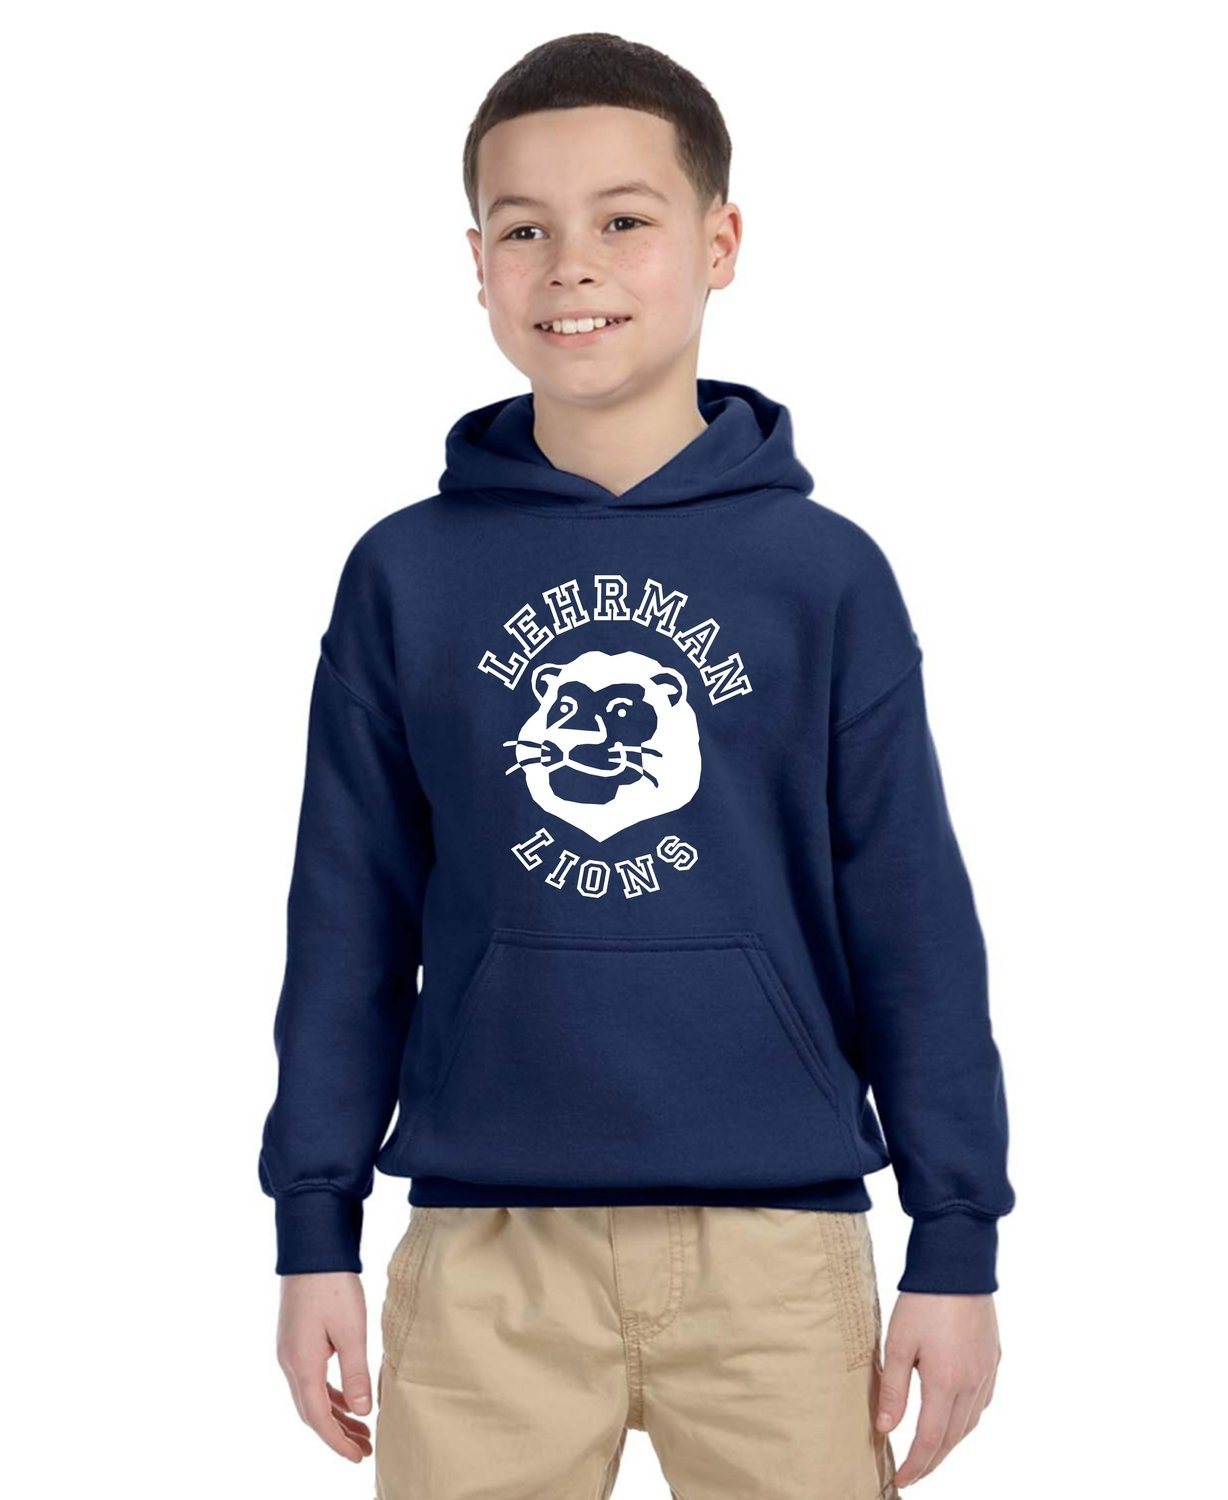 NEW! Hoodie Pull-over Unisex Lion YOUTH